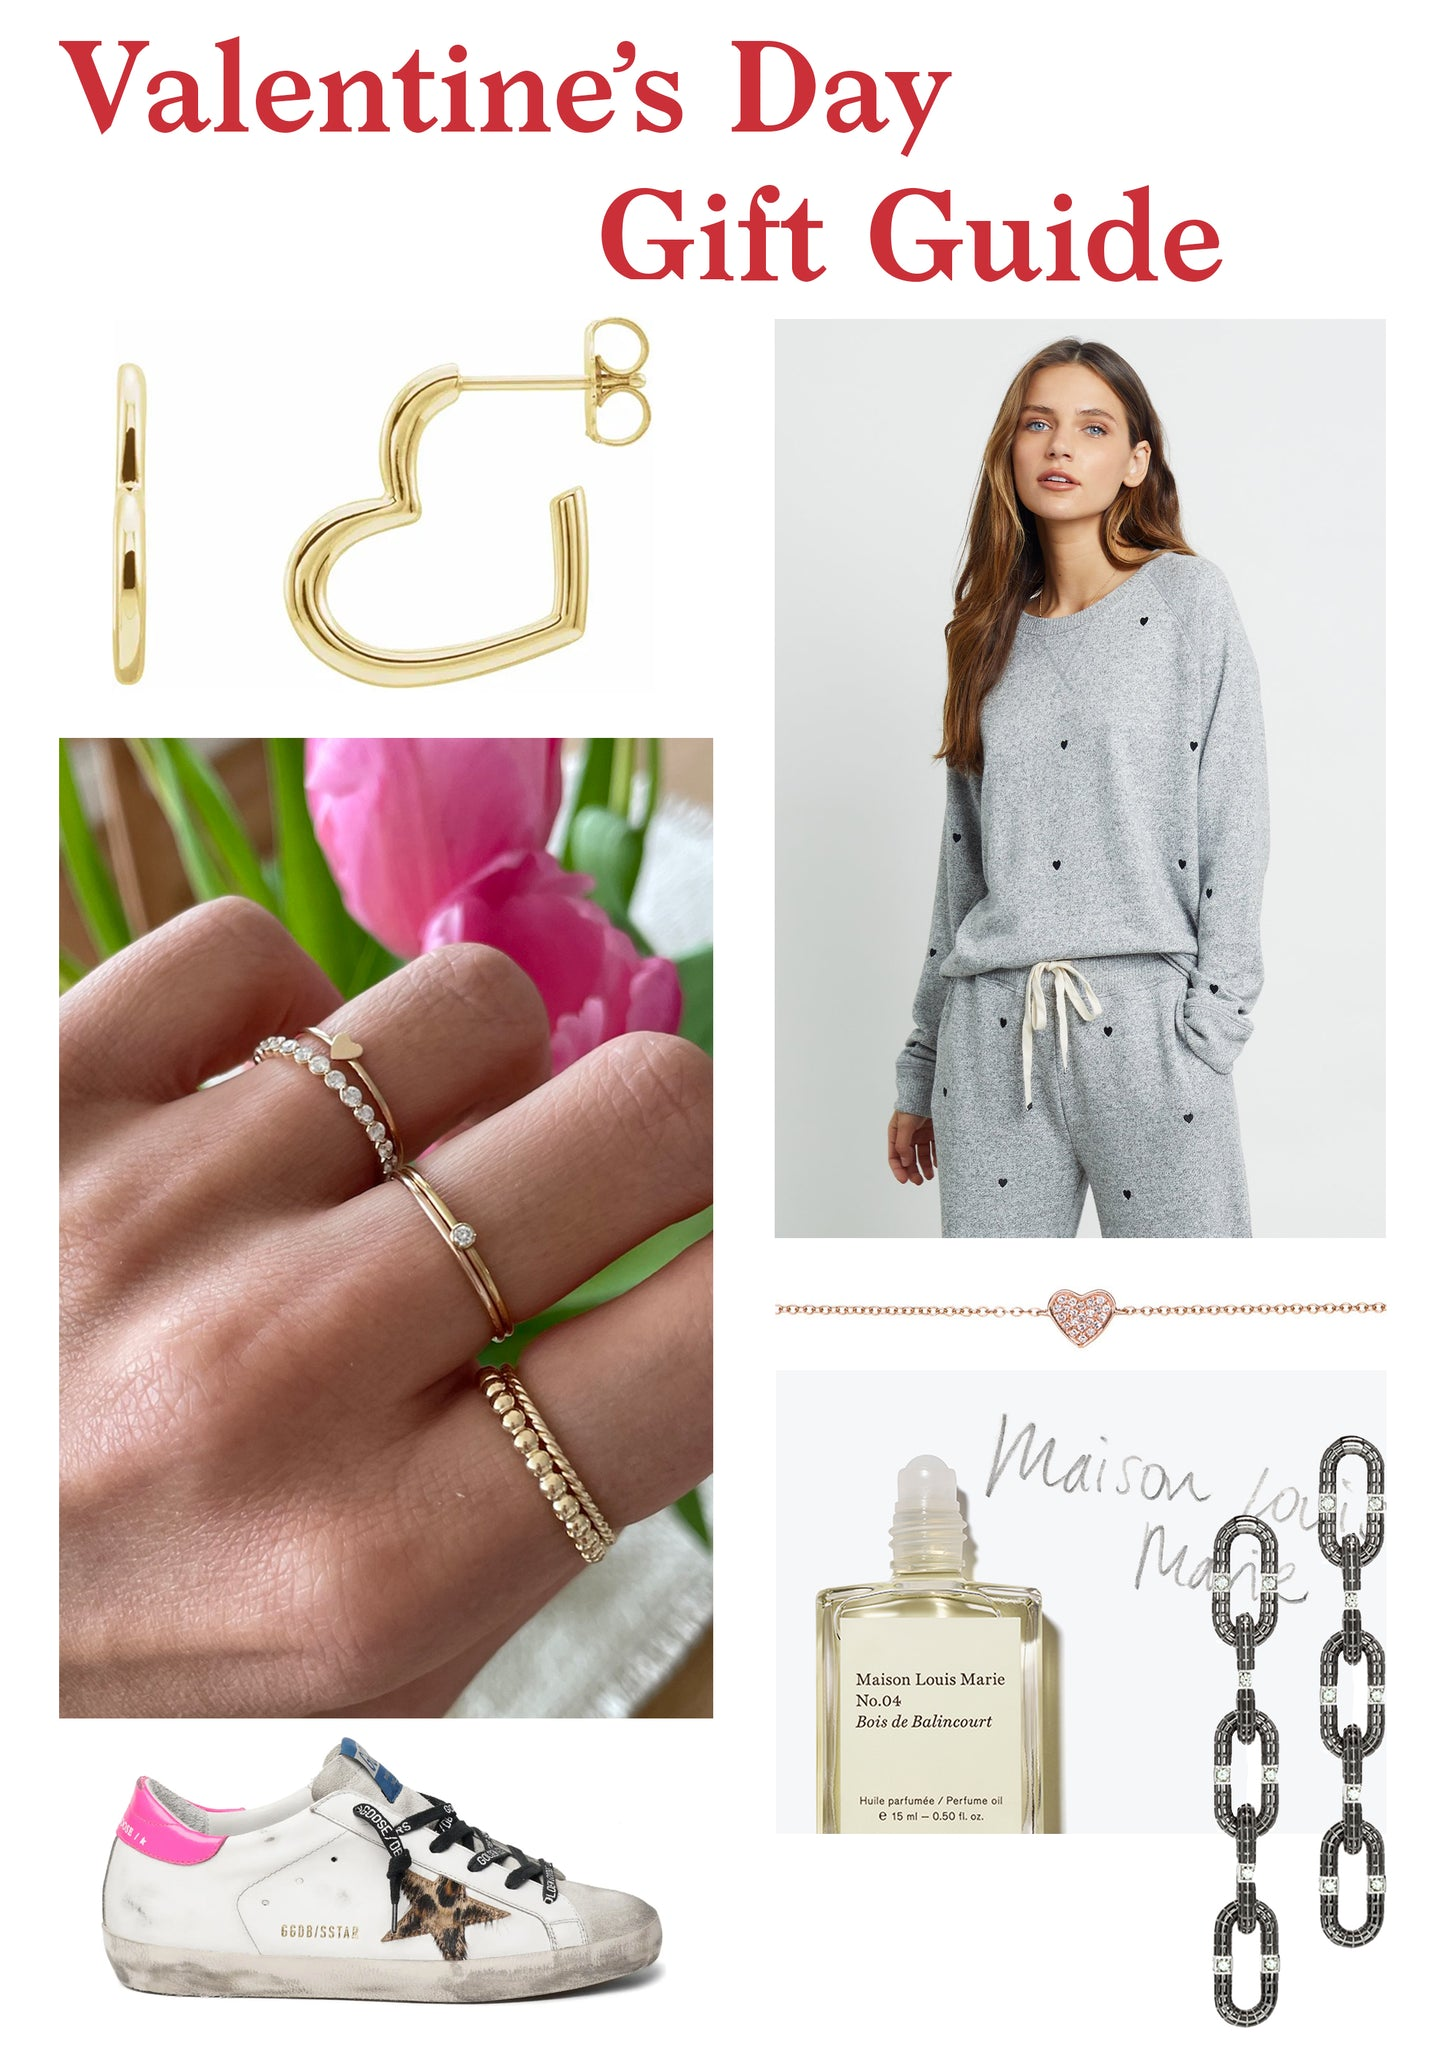 Pavilion - Valentine's Day Gift Guide